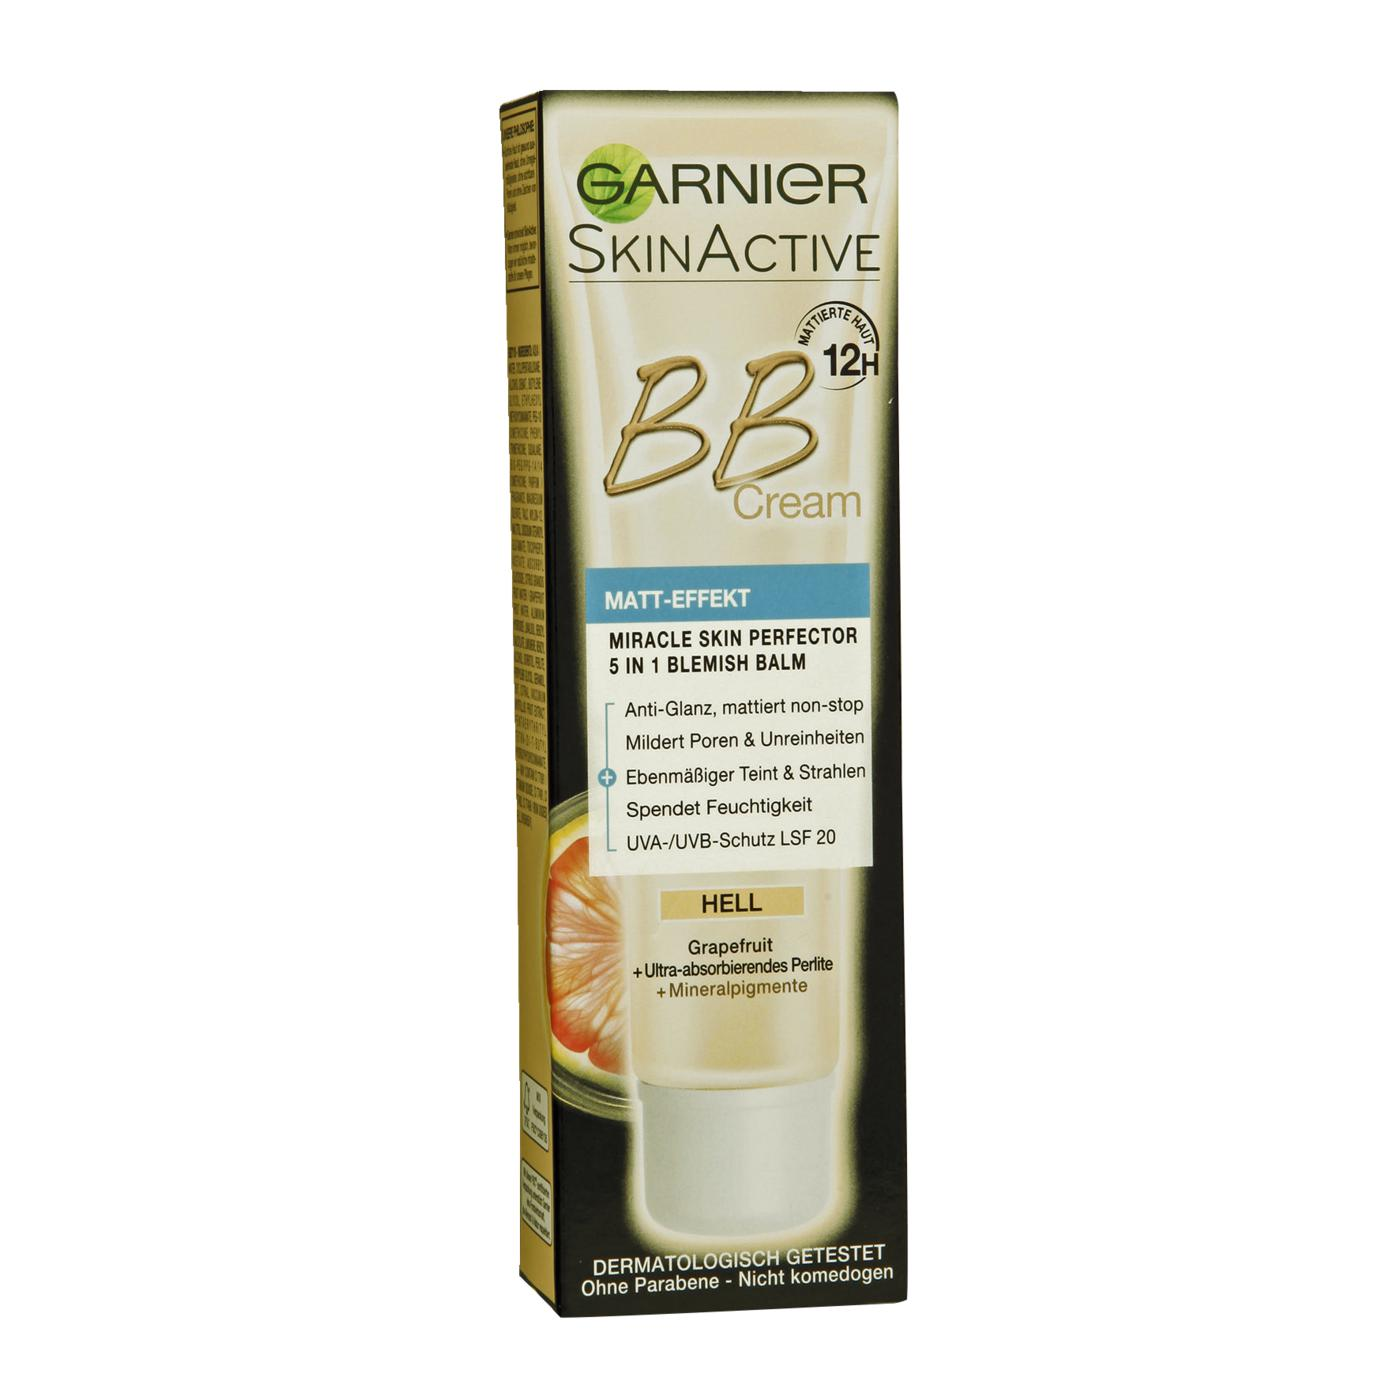 Garnier Skinactive Bb Cream Matt Effekt Miracle Skin Perfector 5in1